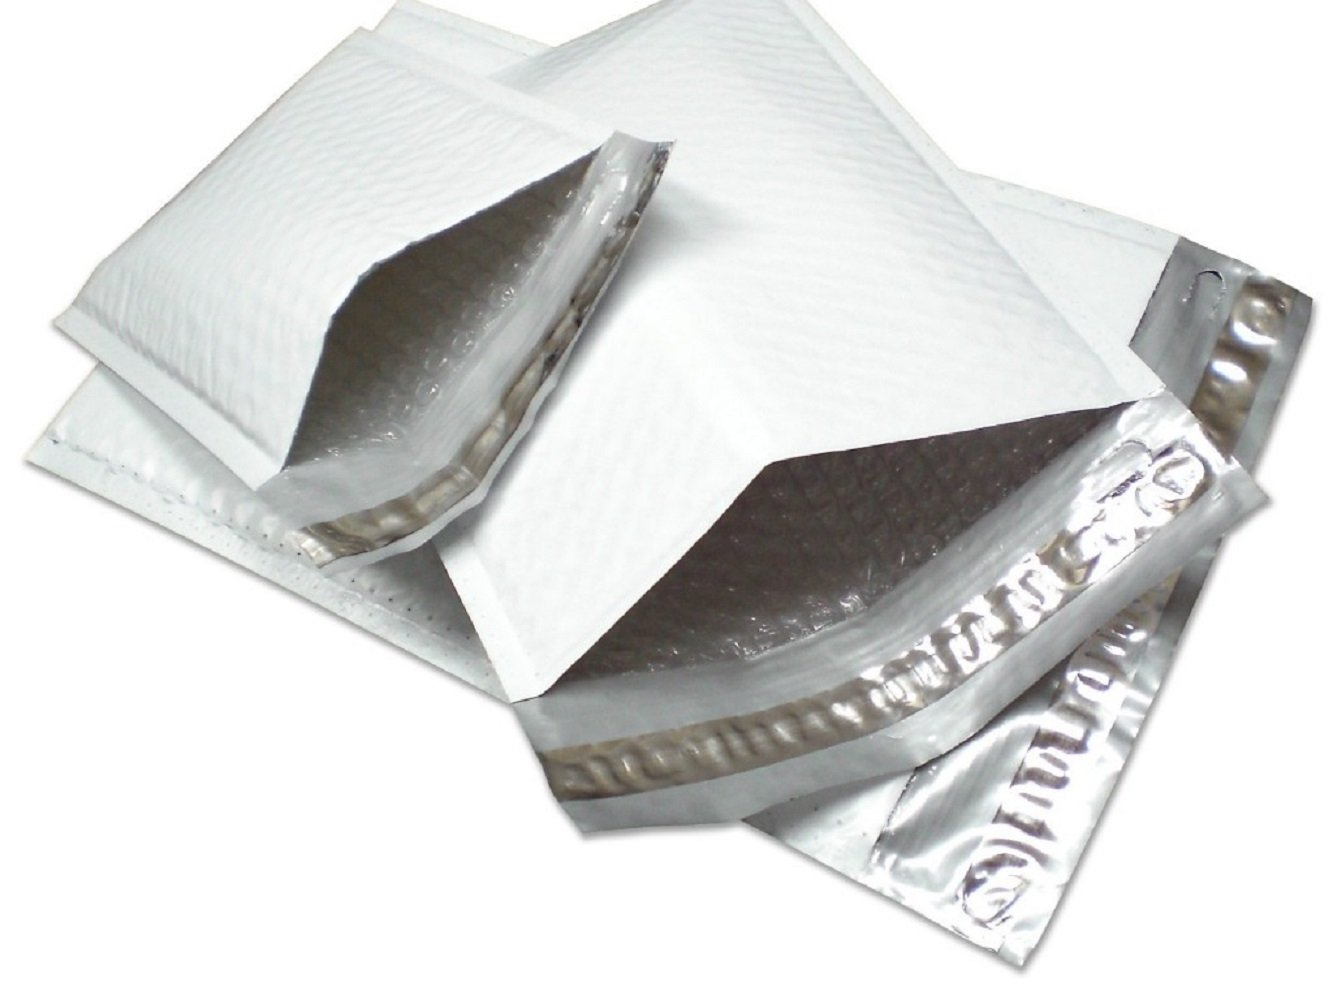 YensPackage 50 pcs #000 4 X 8 Poly Bubble Padded Envelopes Mailers 50PM#000